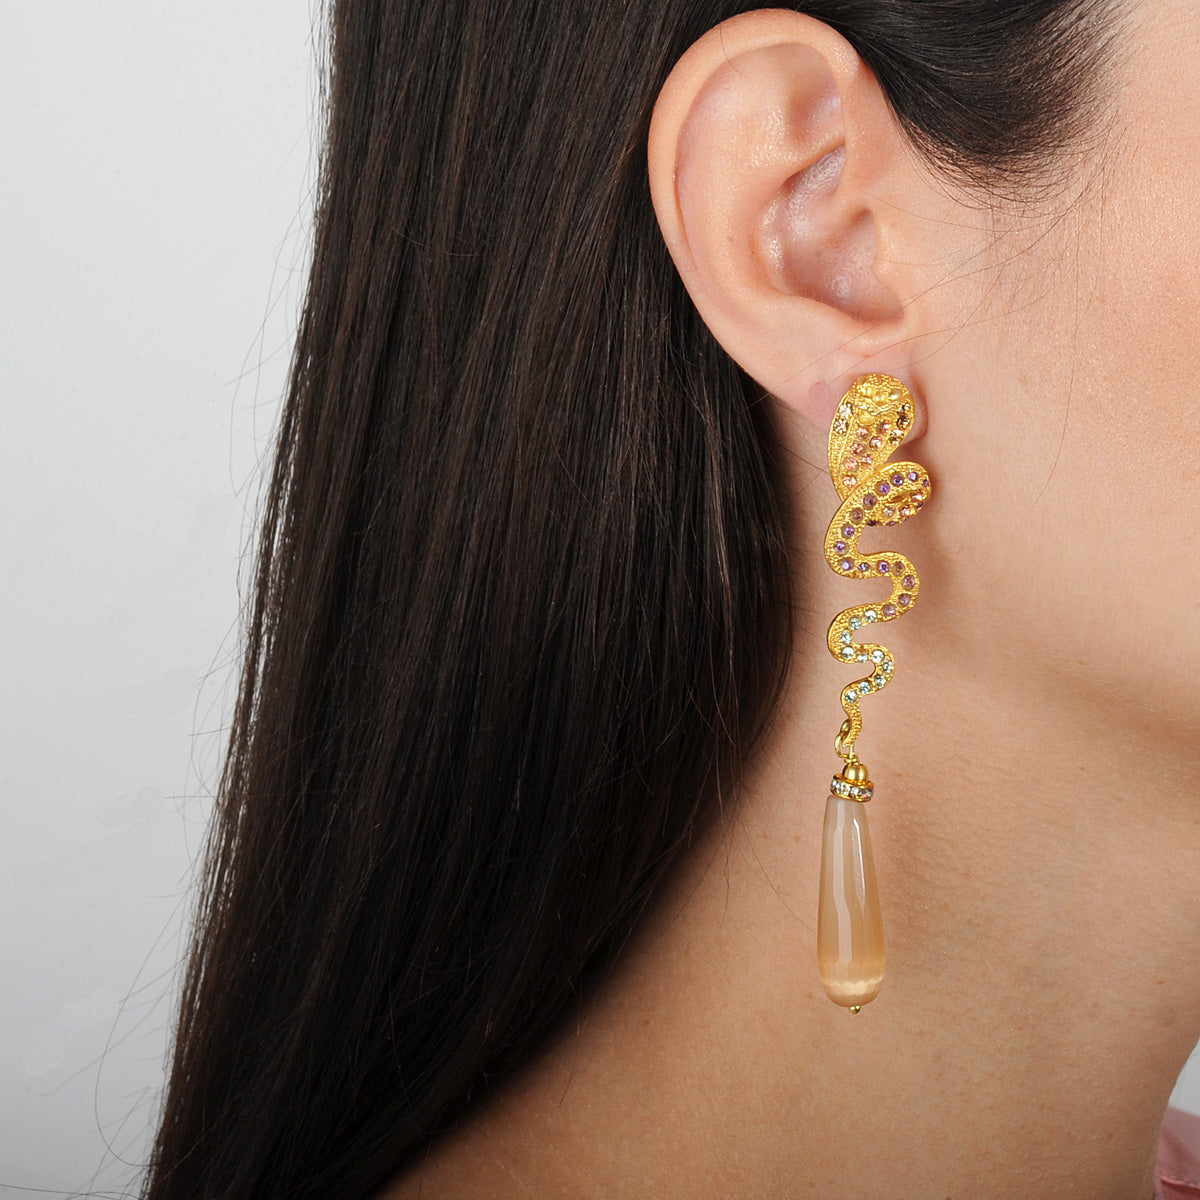 Statement gold plated snake earrings with crystals and cat's eye beige drops katerina psoma